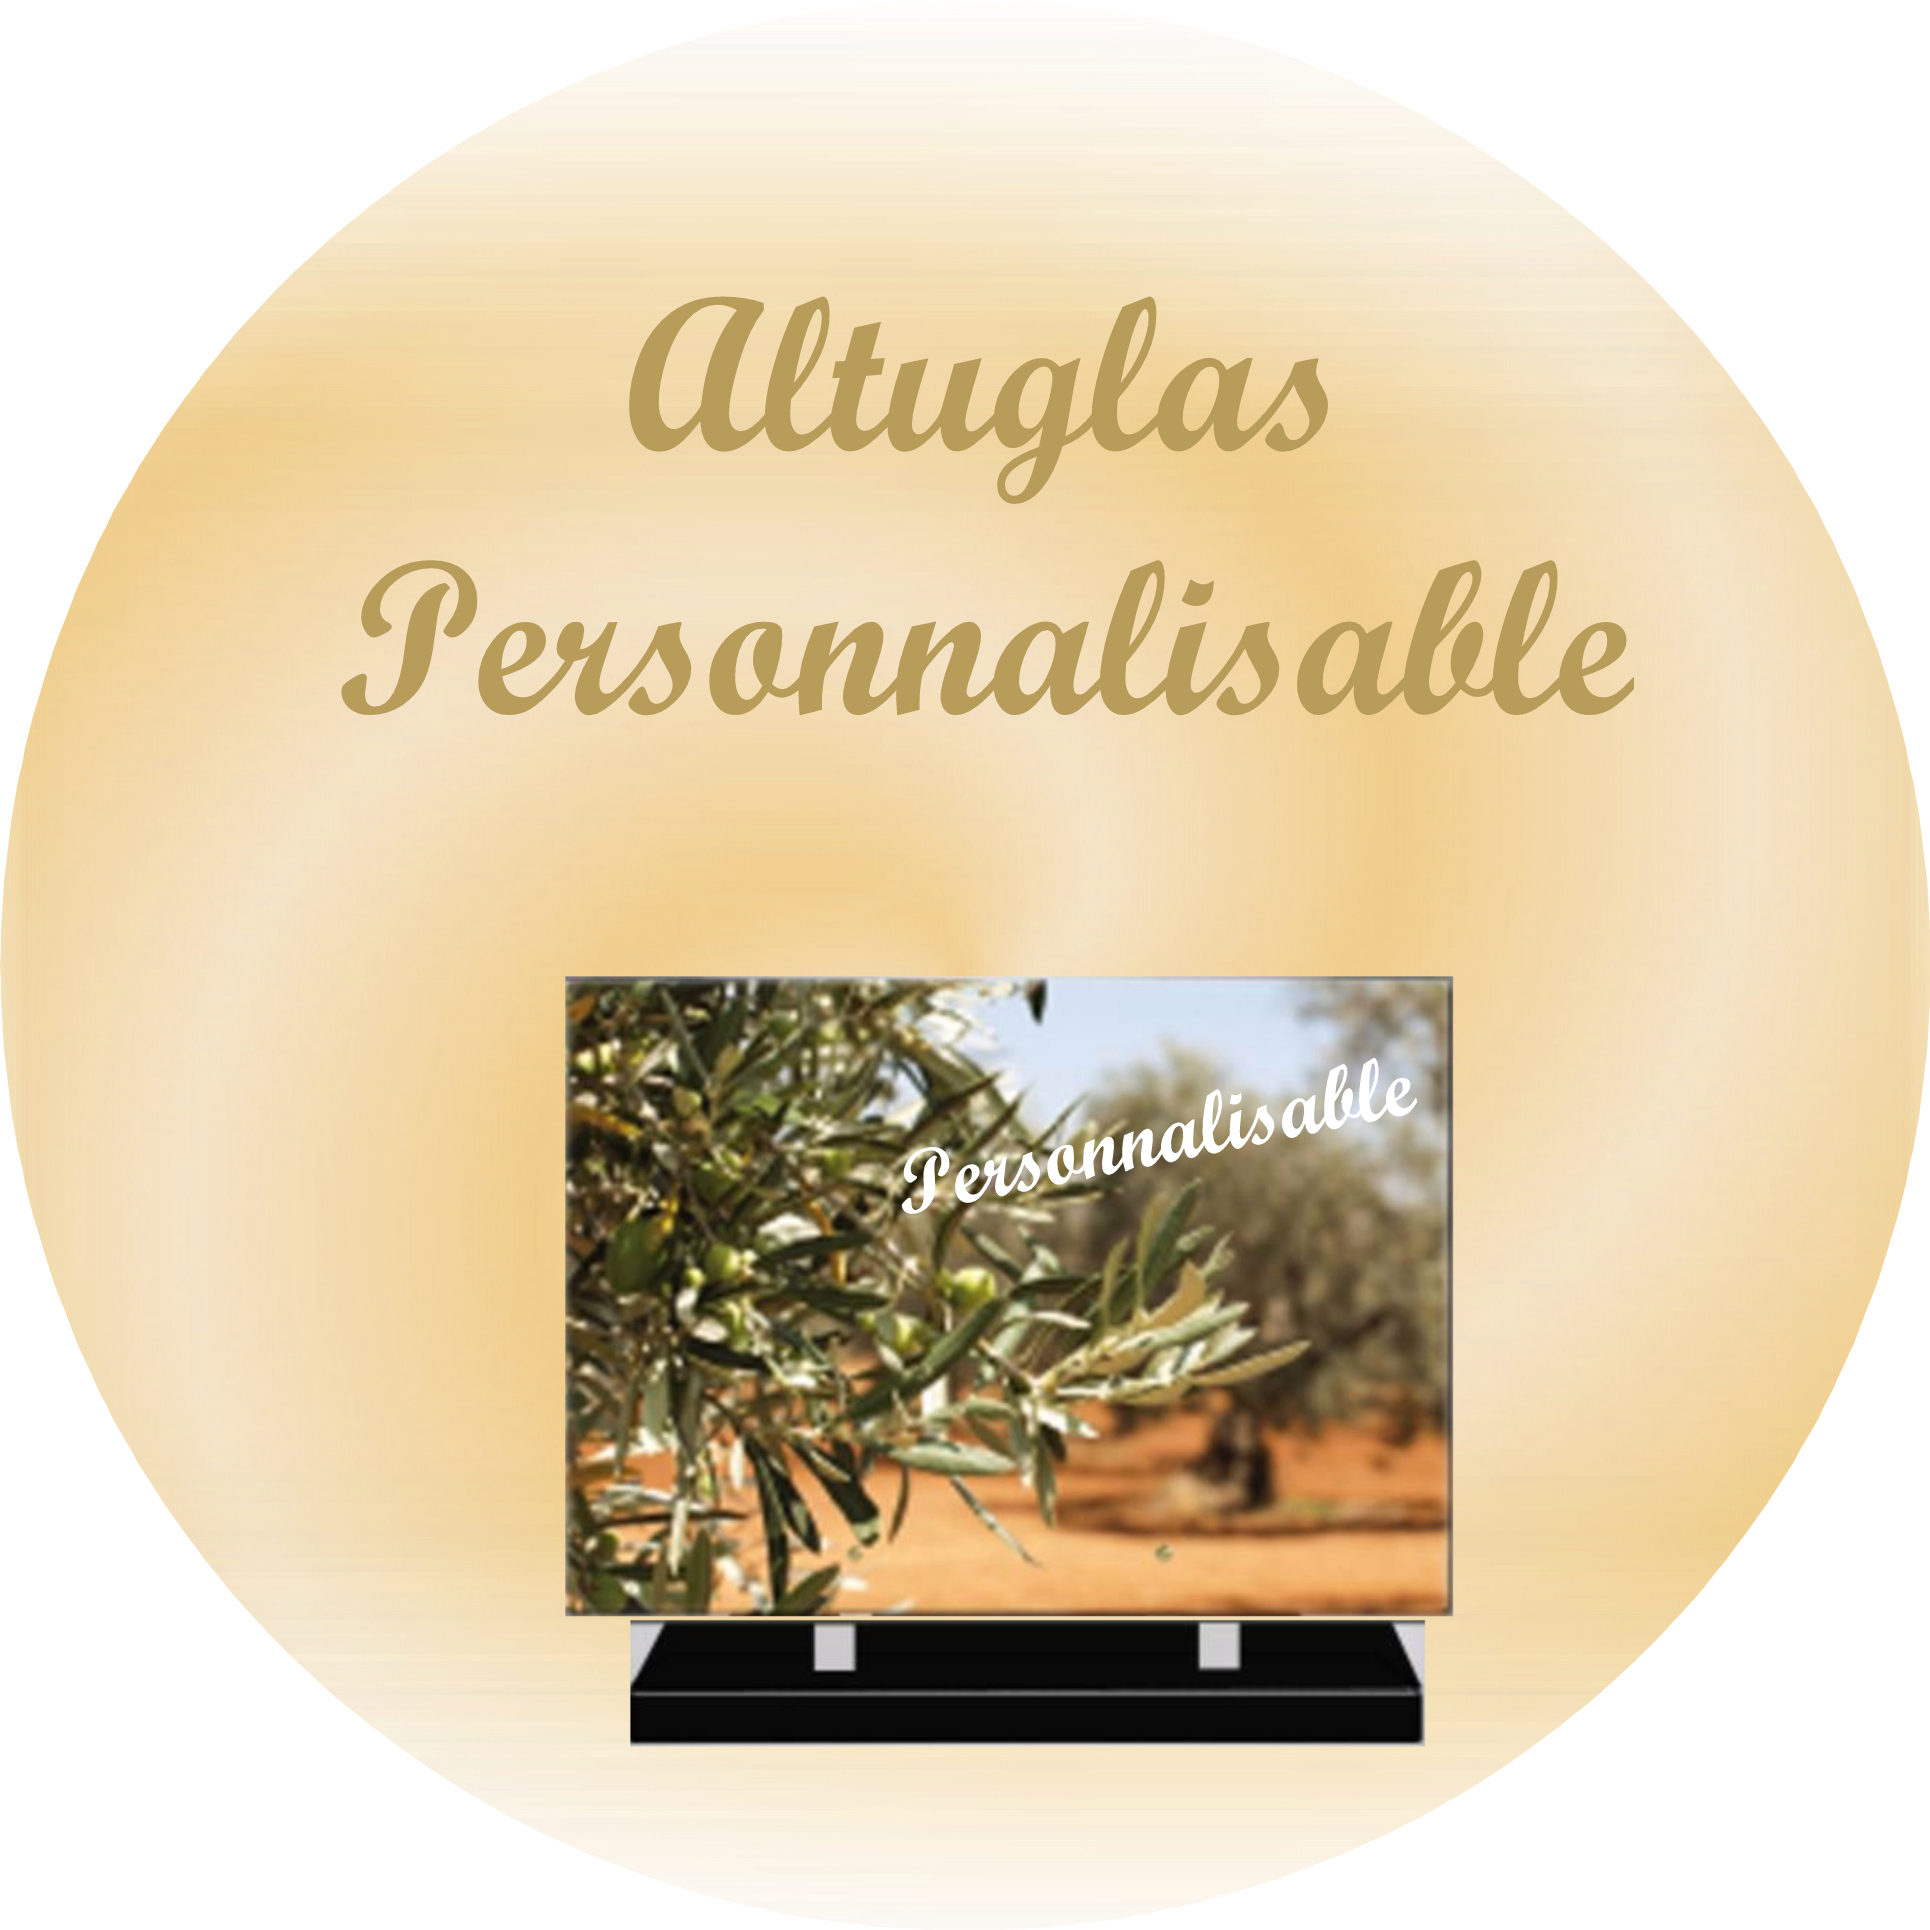 PLAQUES FUNERAIRES MODERNES PERSONNALISABLES RECTANGLE CROZET